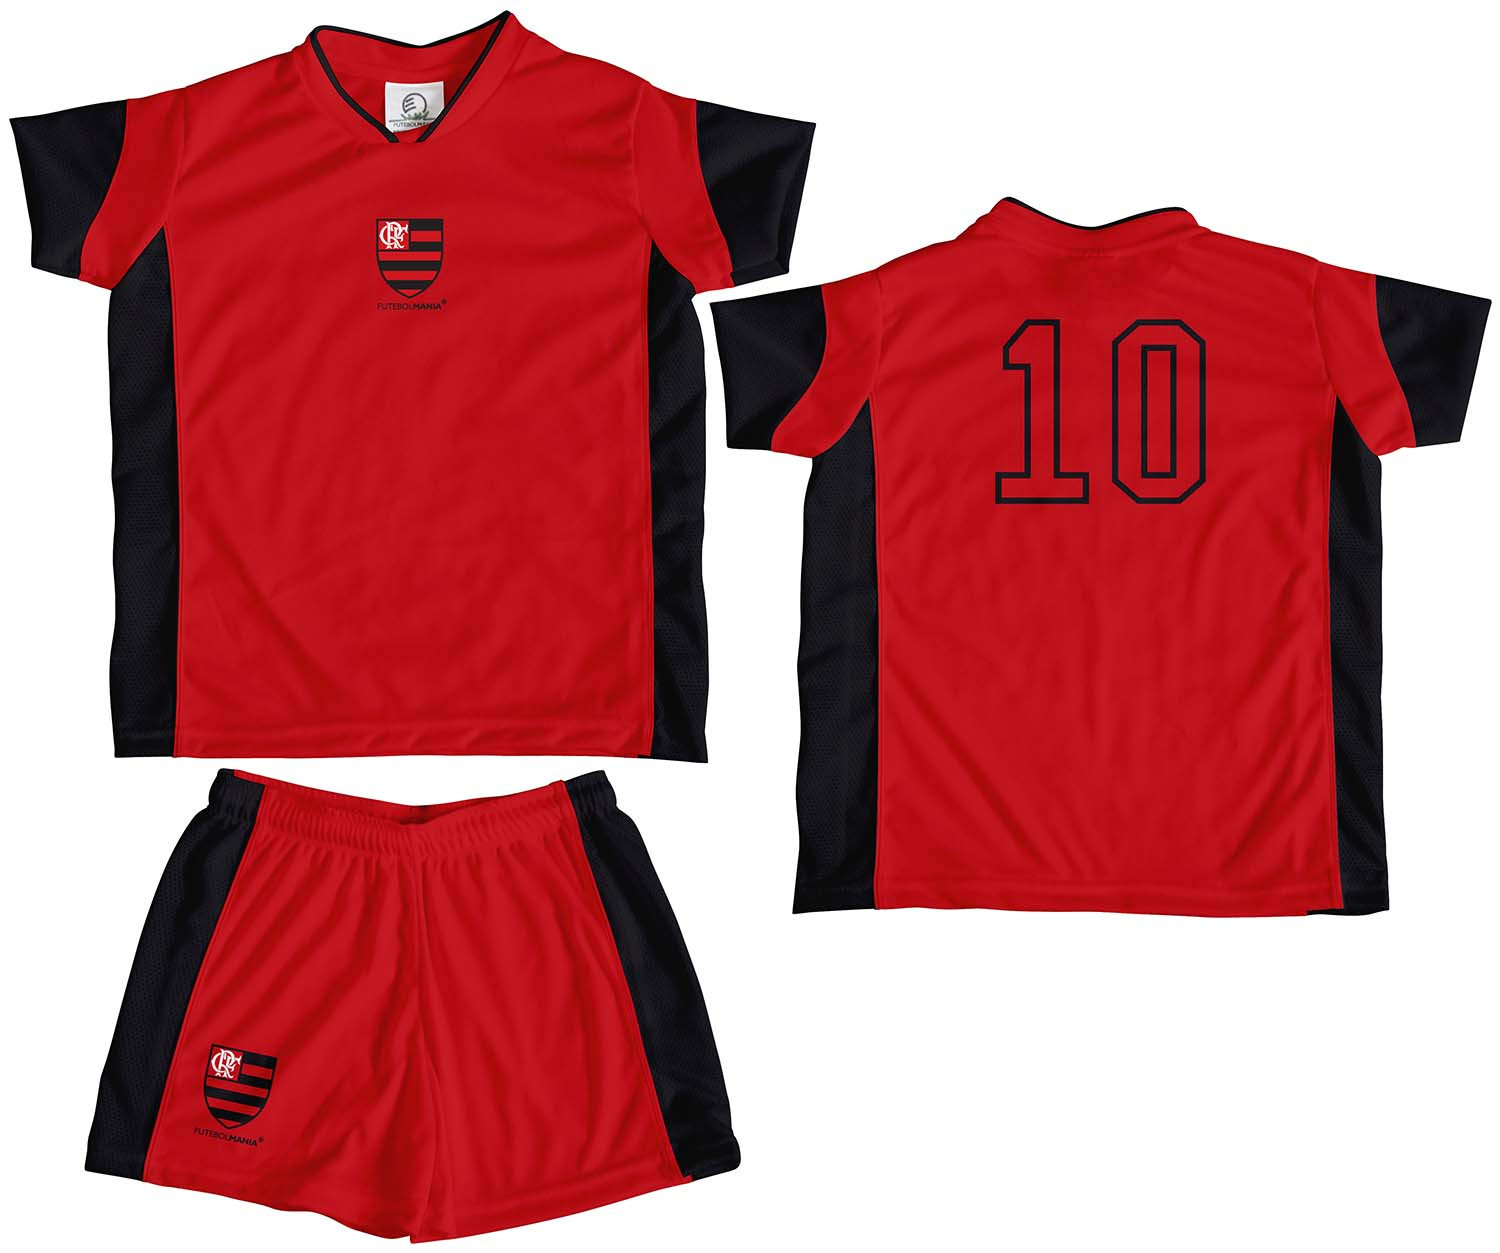 Kit Camiseta e Shorts Infantil FLAMENGO b9abe780516